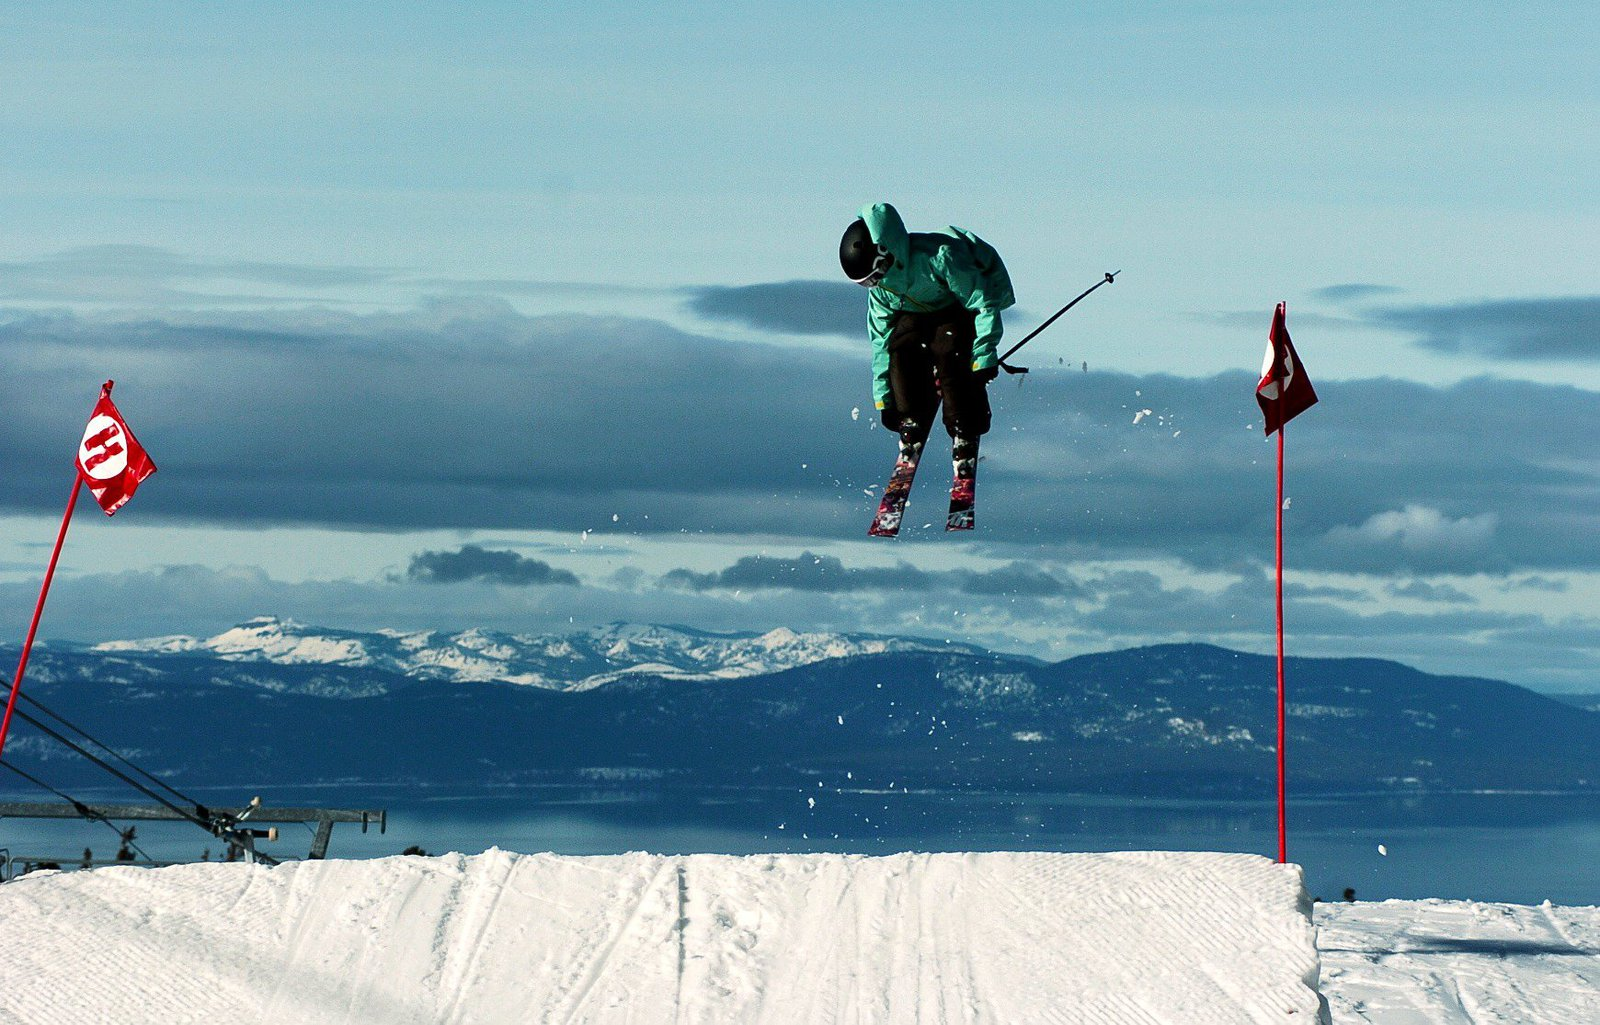 Jumping at heavenly